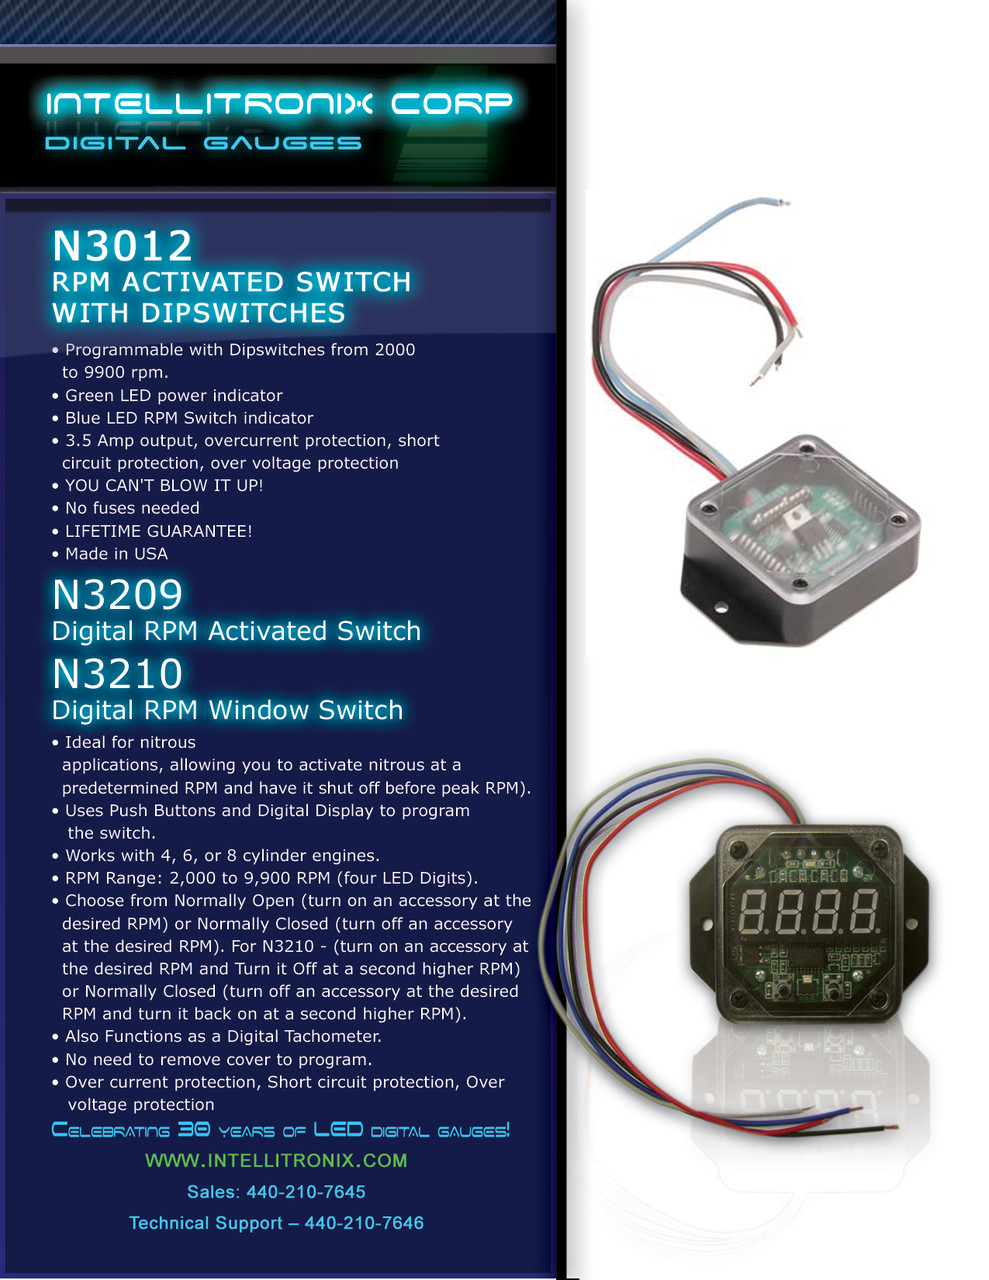 RPM Activated Switch with Dipswitches BROCHURE